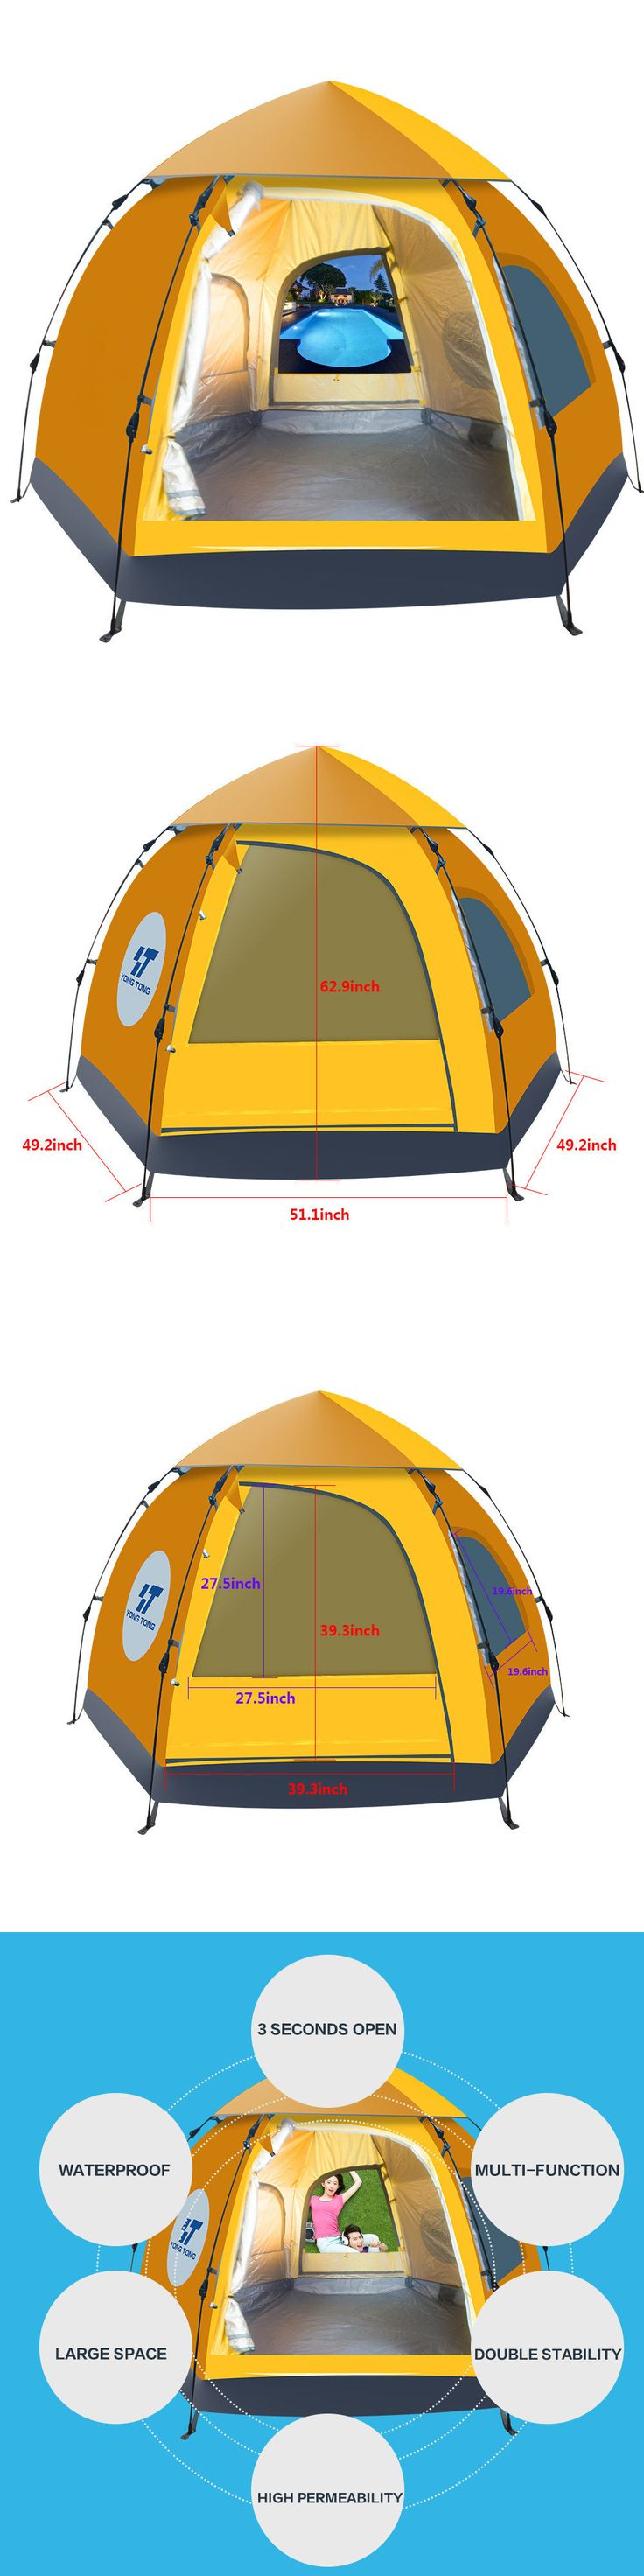 Tent and Canopy Accessories 36120: 5-6 People Waterproof Automatic Outdoor Instant Pop Up Tent Camping Hiking Tent -> BUY IT NOW ONLY: $69.99 on eBay!